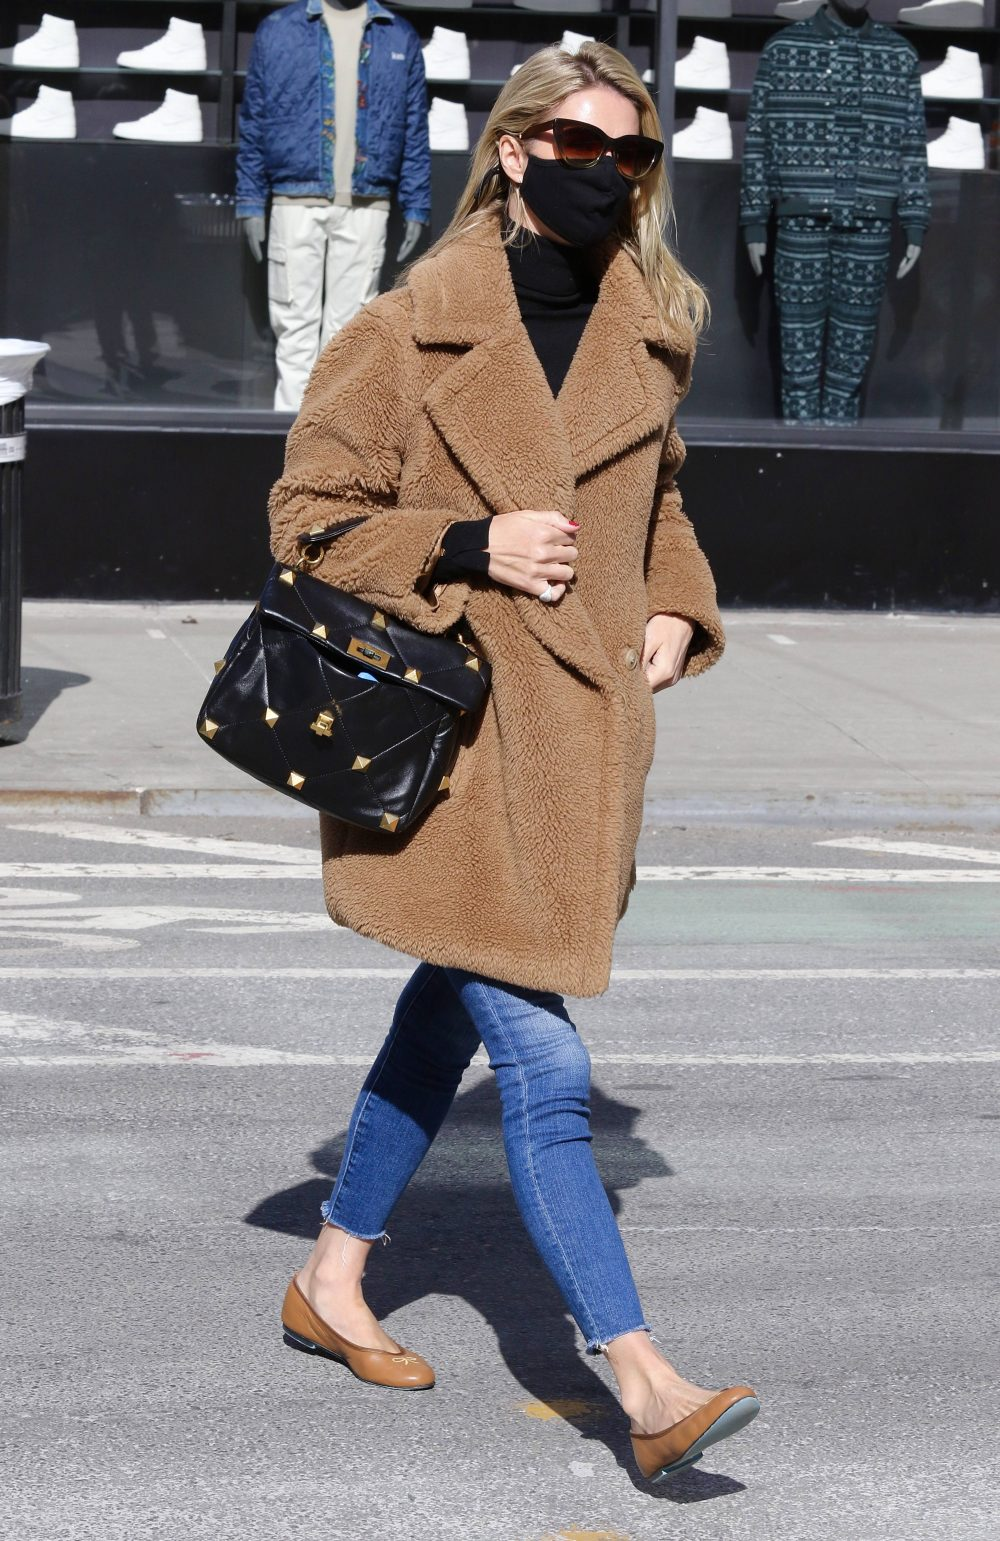 Nicky Hilton looks stylish in a brown teddy bear coat while out on a cold day NYC